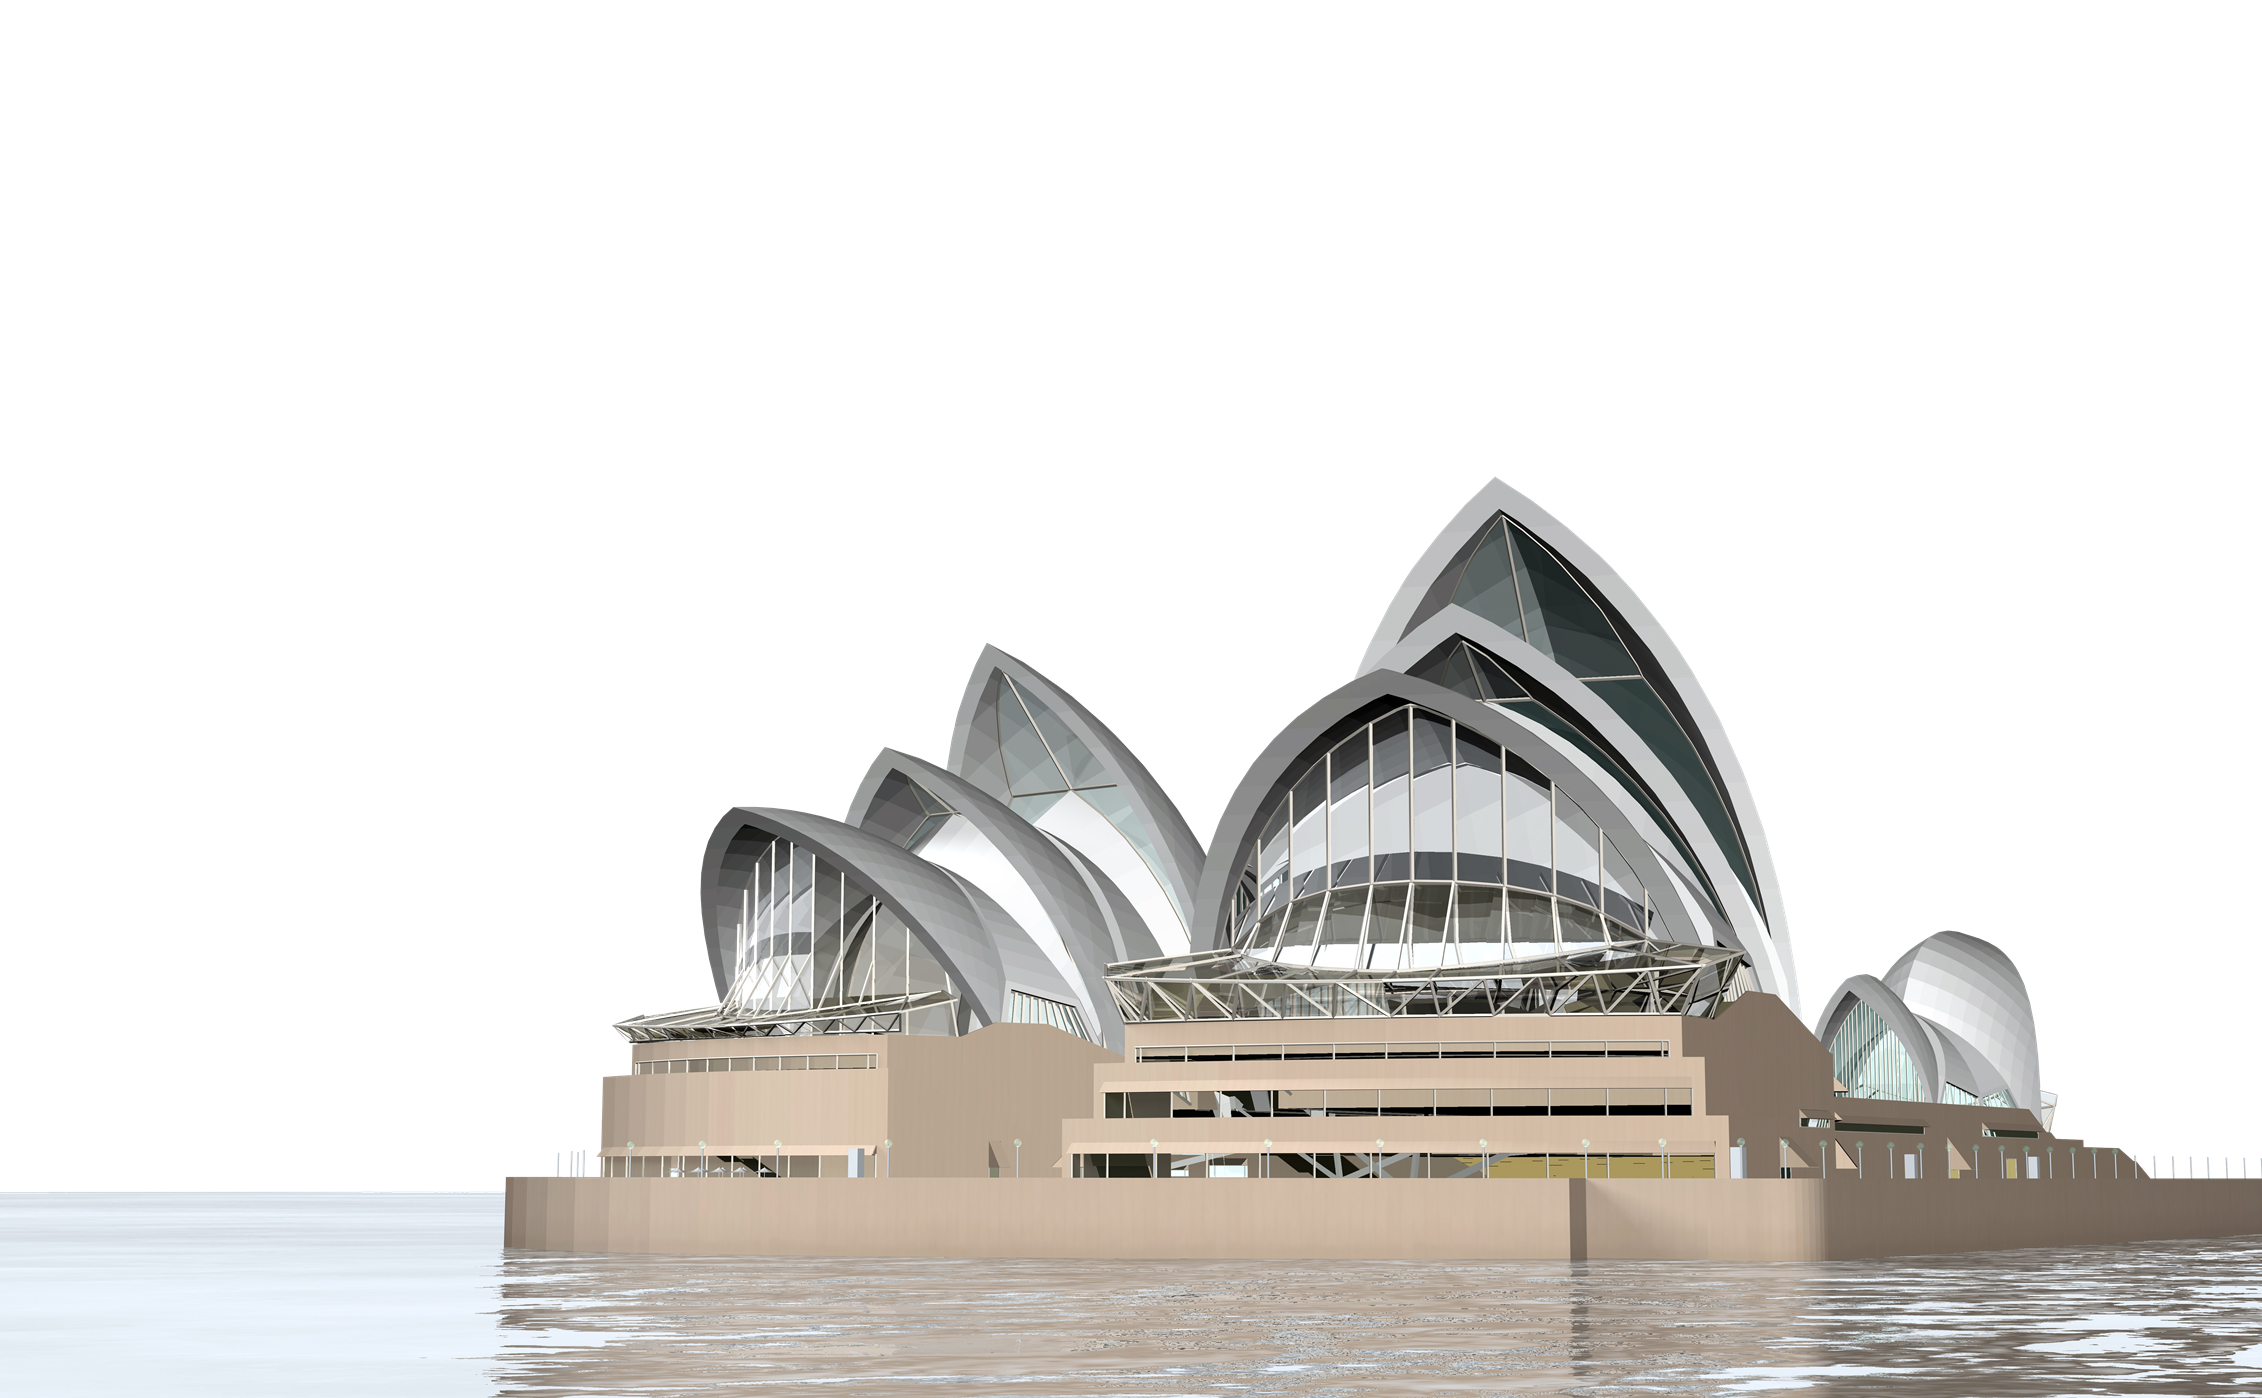 Png Sydney Opera House - Sydney Opera House Png Transparent Image, Transparent background PNG HD thumbnail